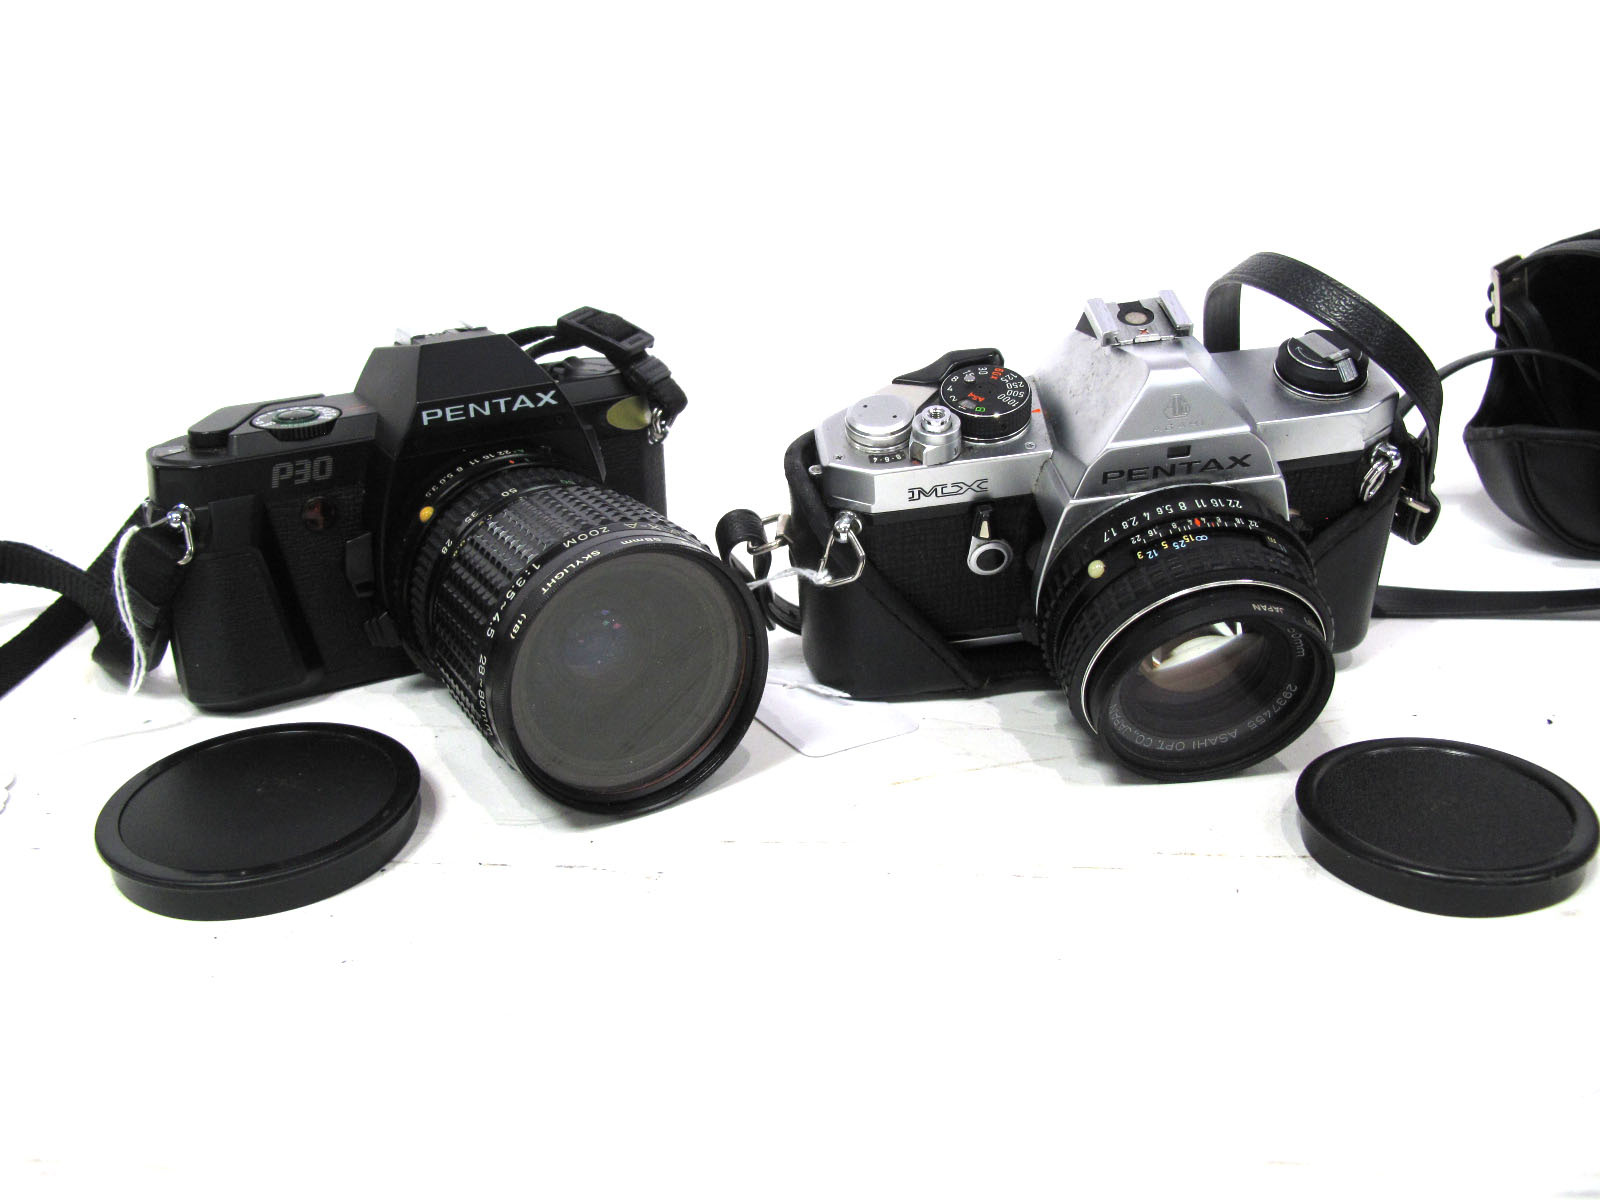 Pentax MX Camera, with SMC Pentax M 1-17 50mm lens and a Pentax P30 with SMC pentax-A Zoom 28-80mm.